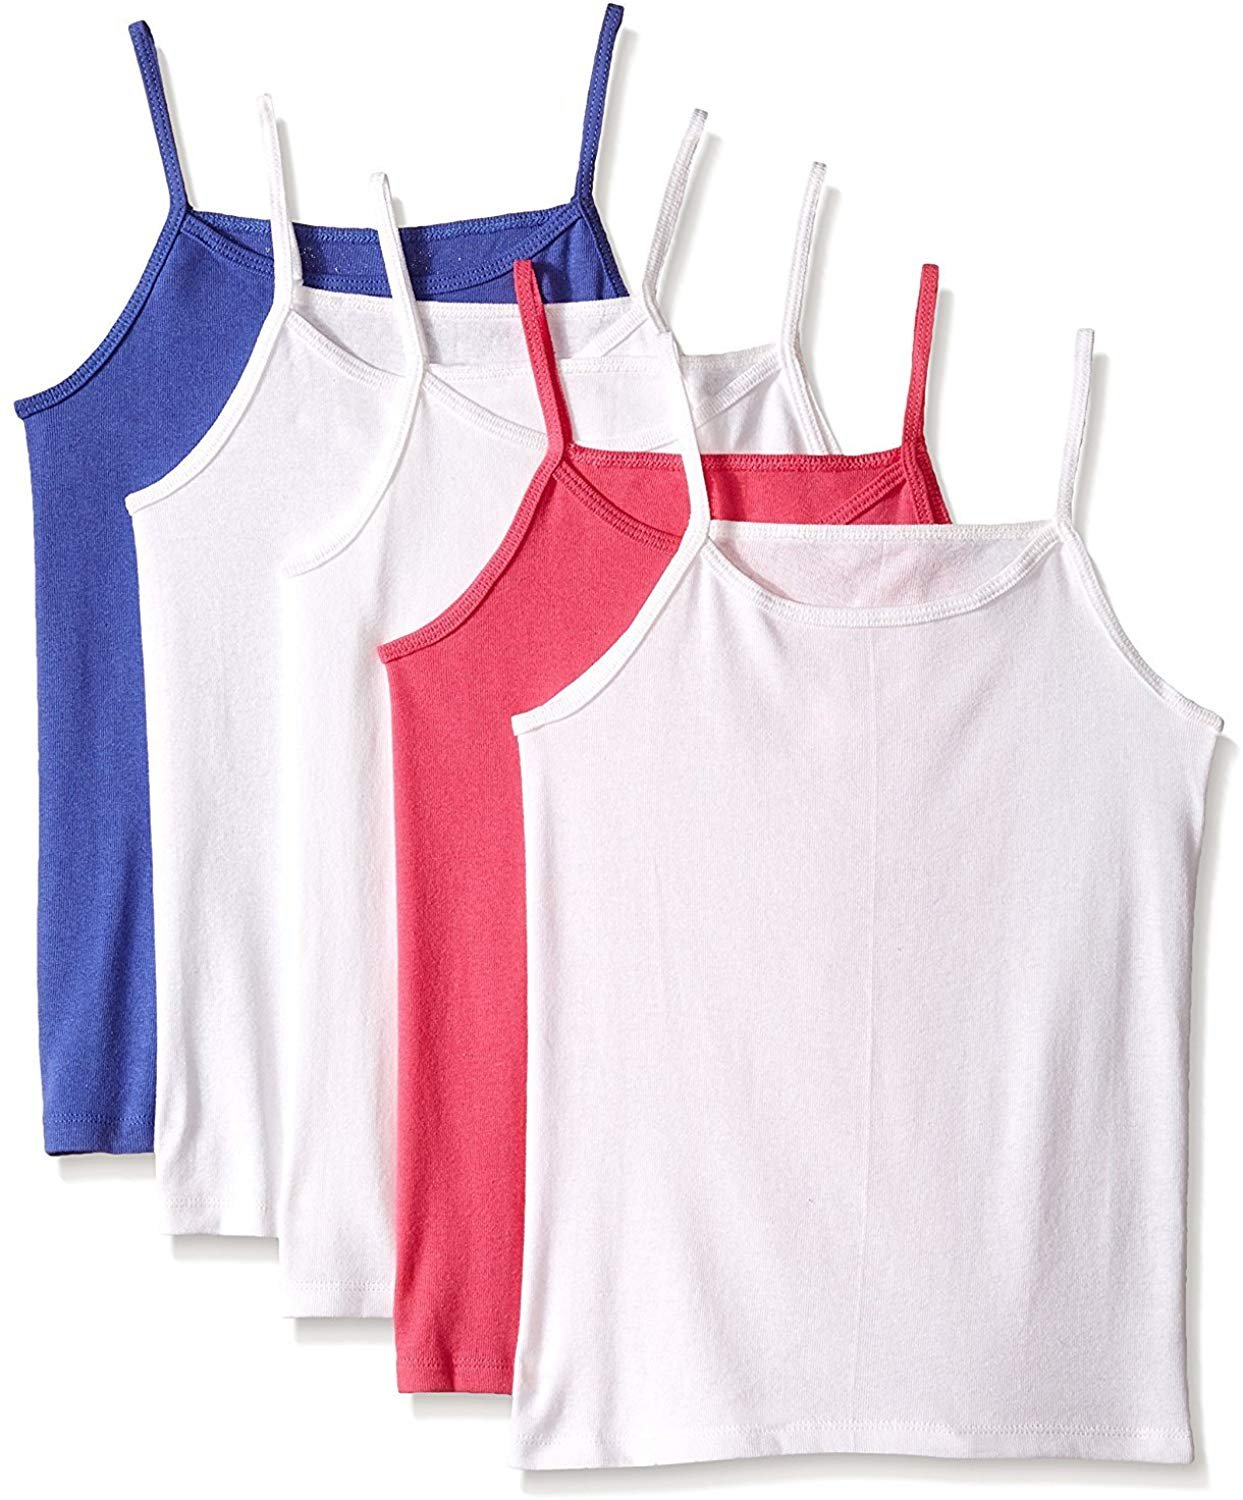 Fruit of the Loom Girls/' Camisoles Tanks Camis 10pk 6 White 2 Pink 2 Gray